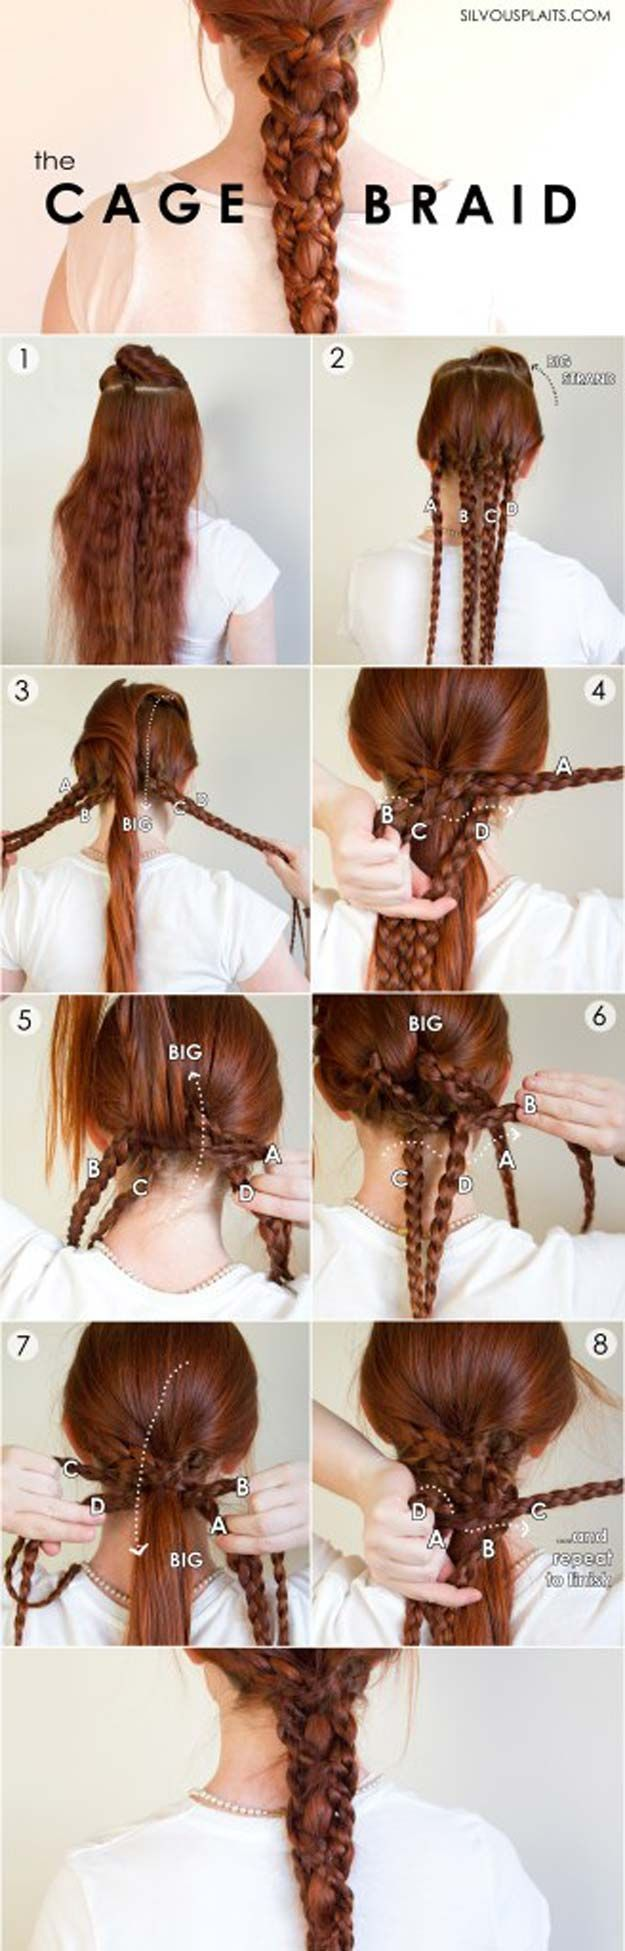 Best hair braiding tutorials five strand cage braid easy step by